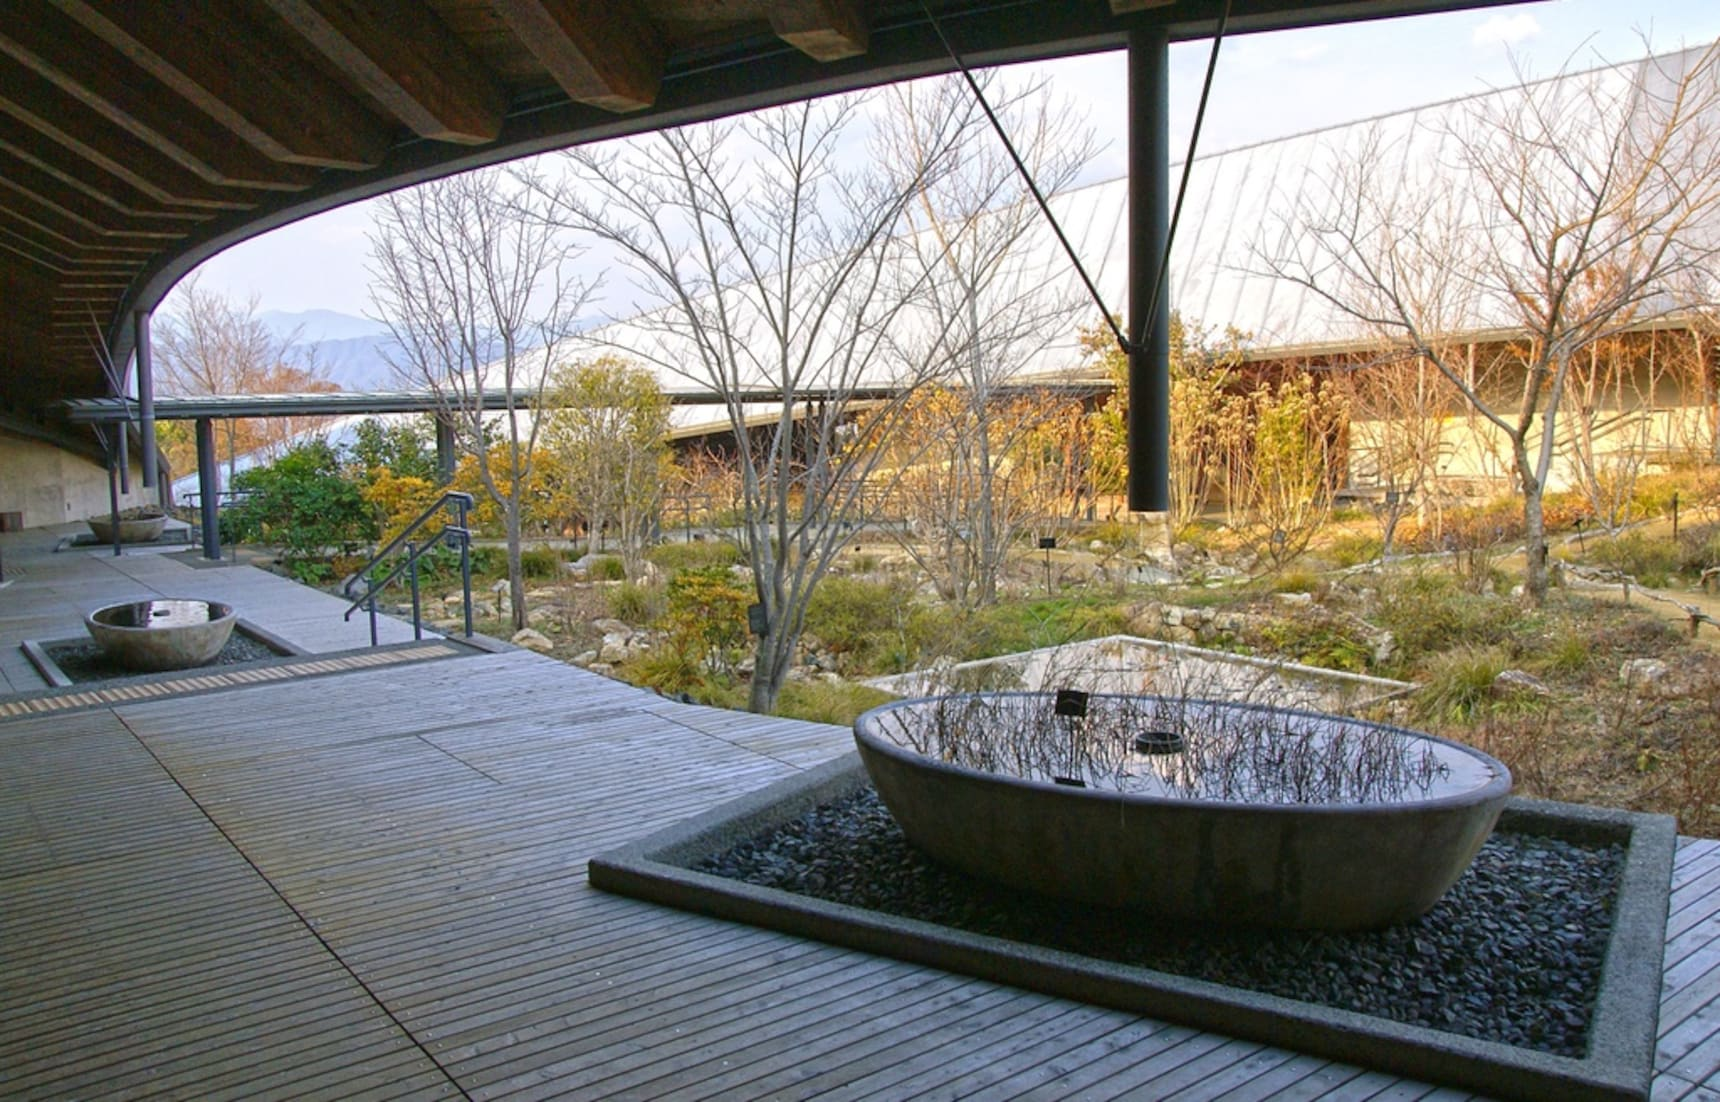 Tranquil Vacation Spots in Southwest Japan